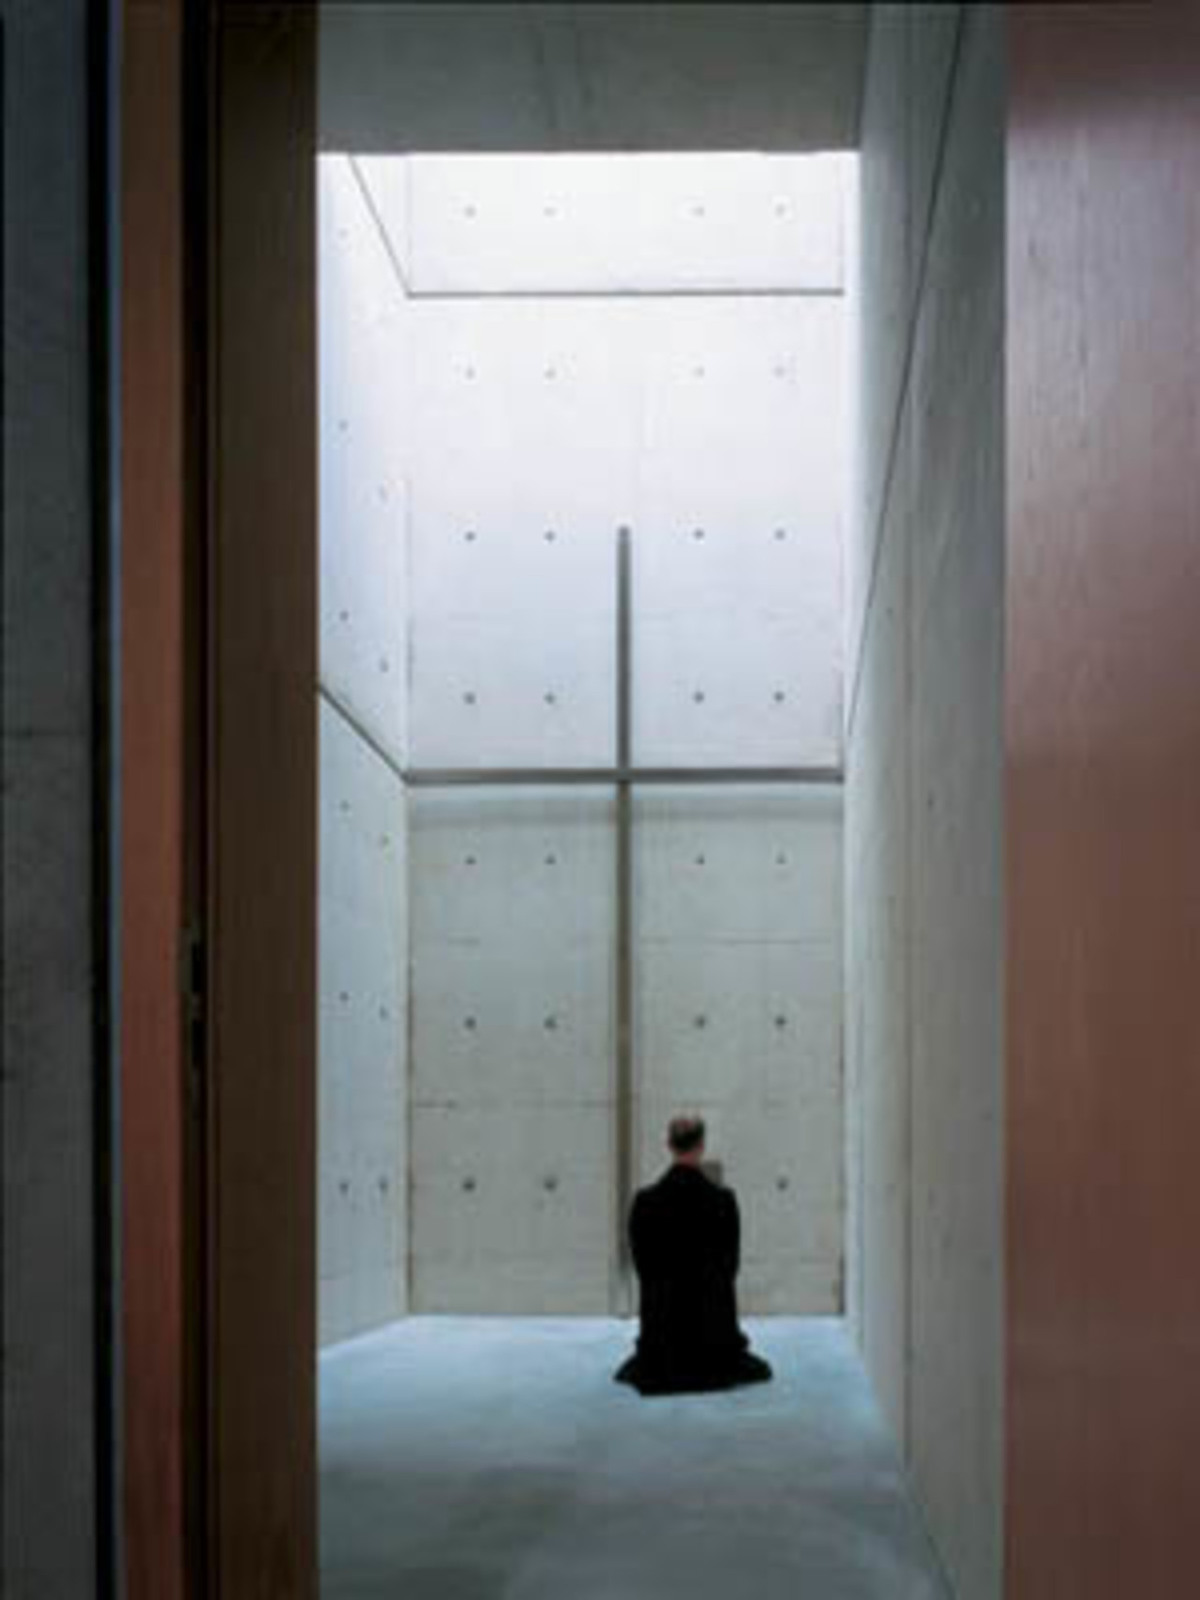 House Of Silence By Form Kouichi Kimura Architects: Peter Kulka: House Of Silence Meschede